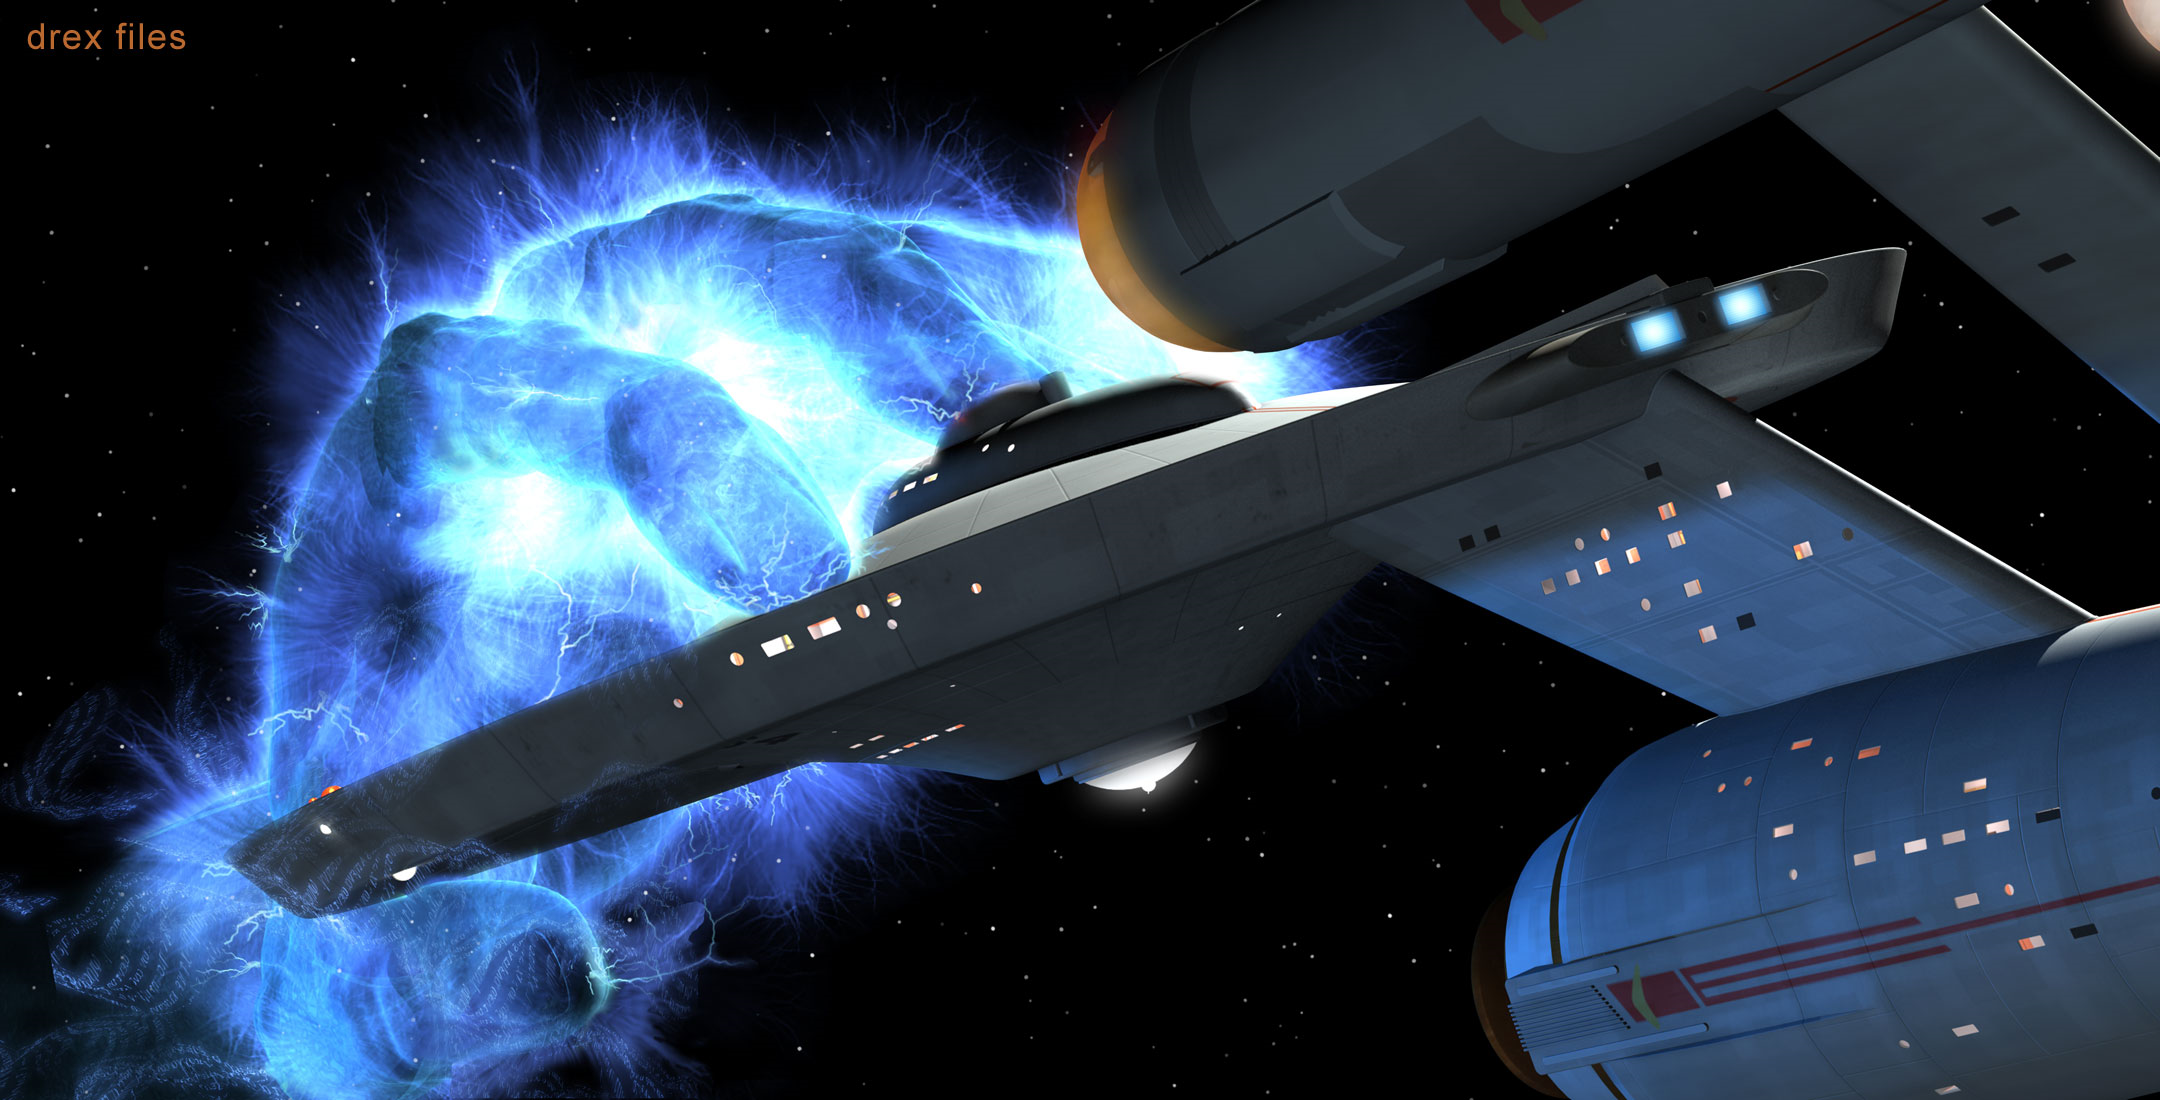 star trek uss enterprise HD Wallpaper   Movies TV 1030263 2160x1100